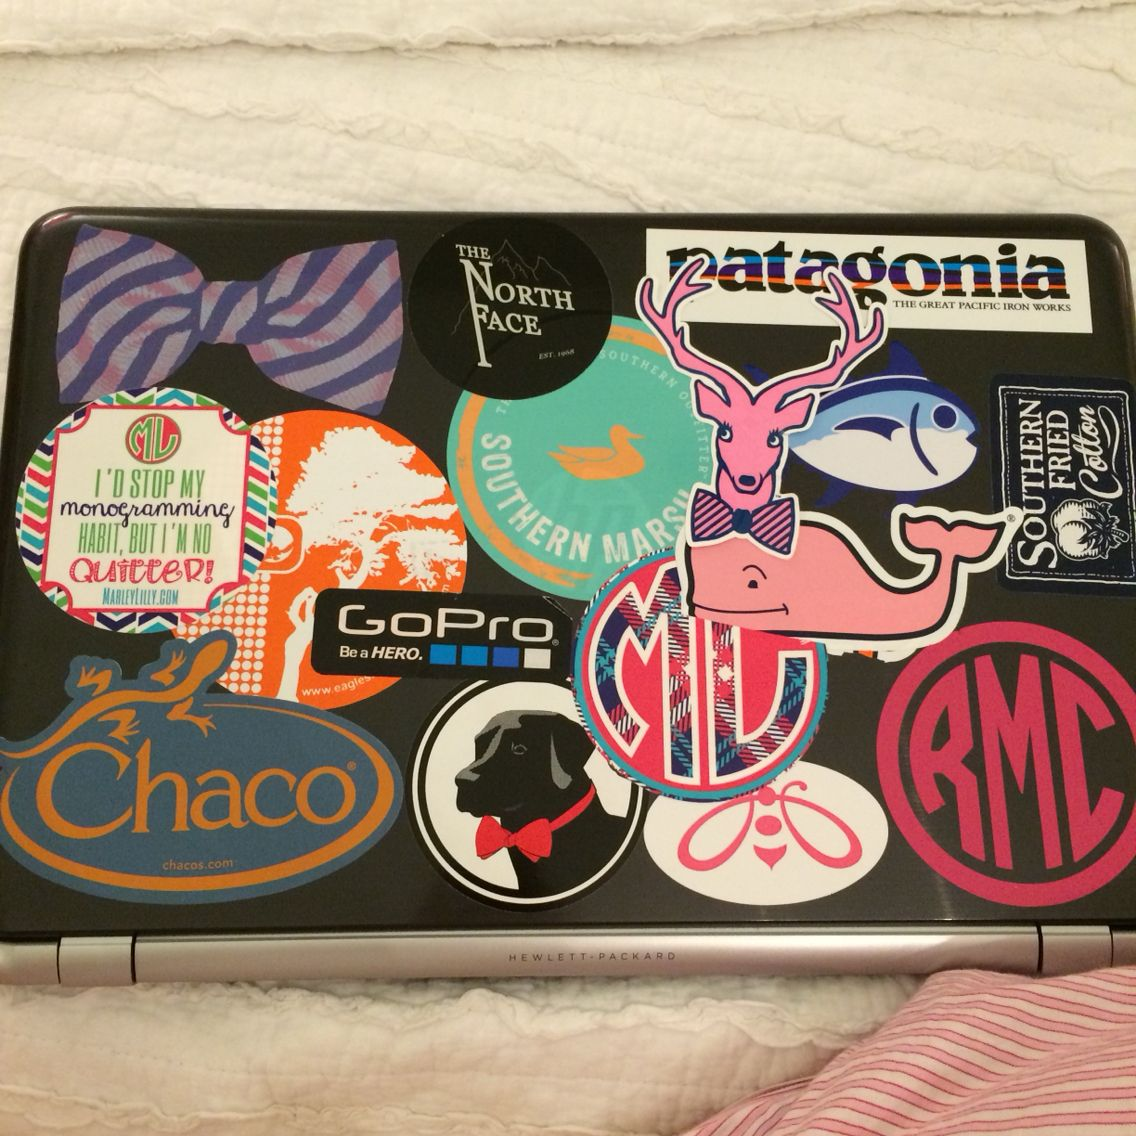 Preppy Laptop Stickers Frat Collection Patagonia Southern Proper Monogram Chaco Marley Lilly Laptop Stickers Preppy Preppy Stickers Laptop Cover Stickers [ 1136 x 1136 Pixel ]